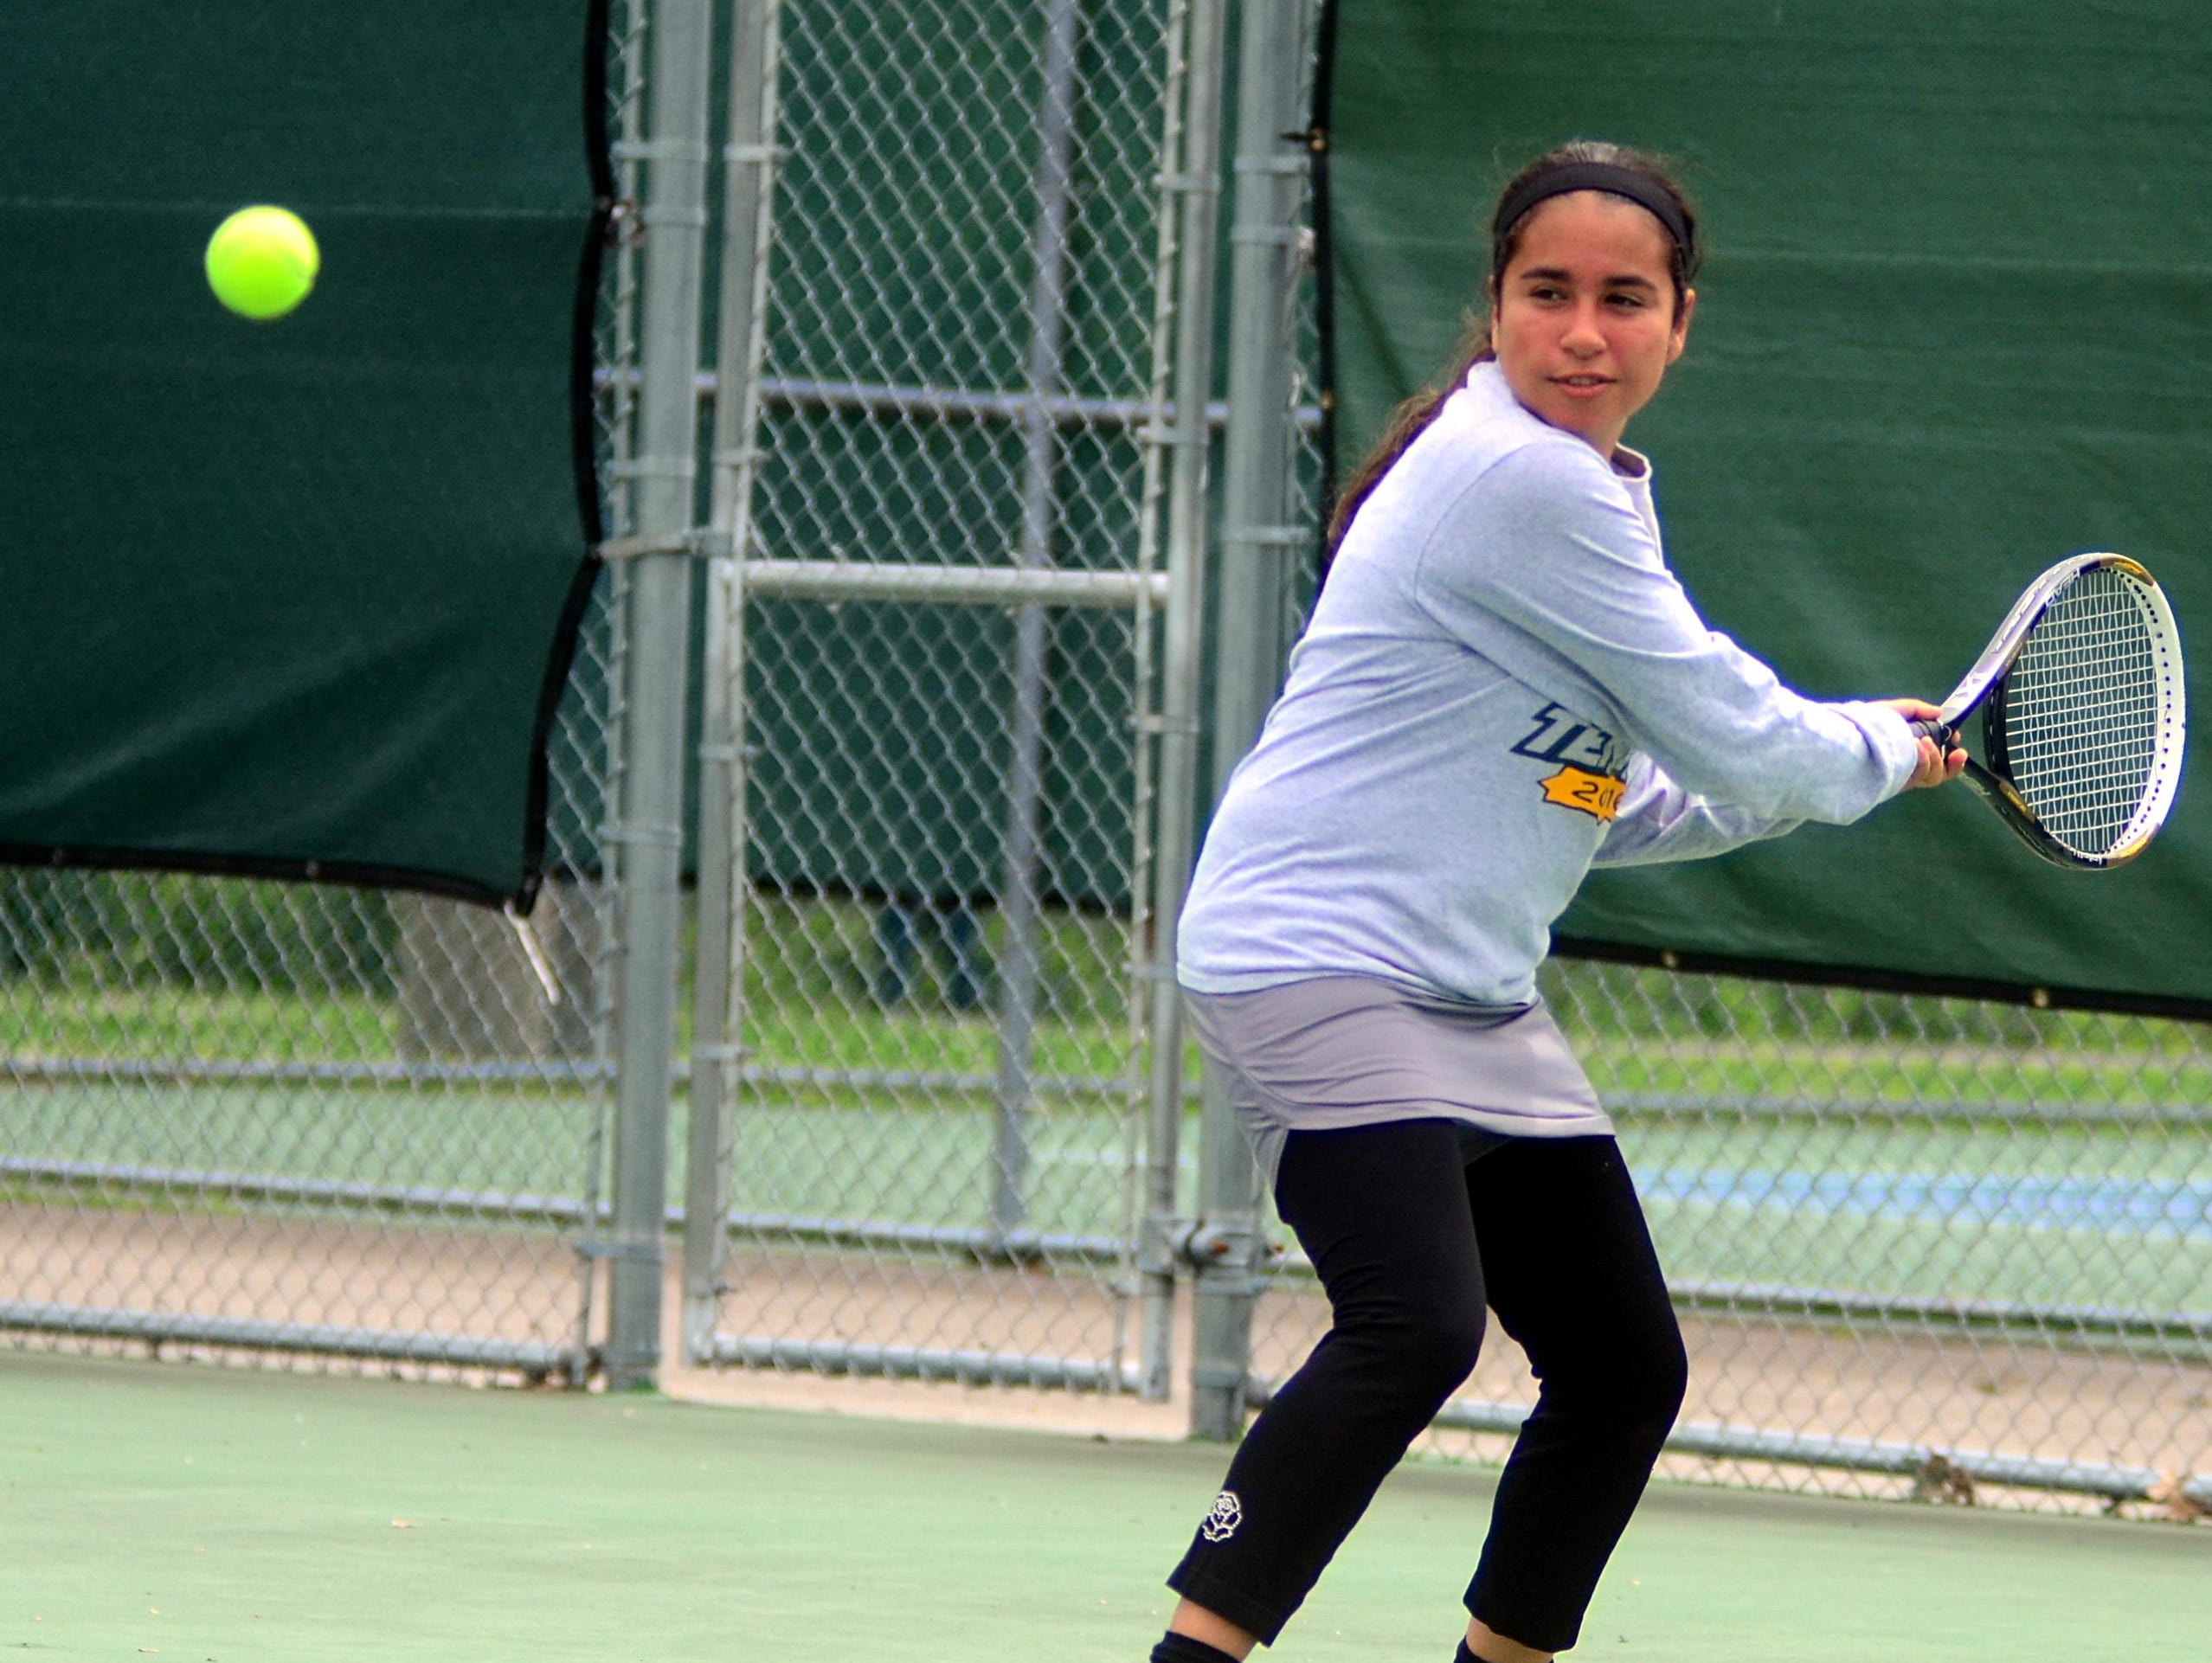 Gallatin High senior Erika Urena prepares to hit a backhand during Tuesday's District 9-AAA Individual Tennis Tournament. Urena suffered a straight-set loss in the first round of the singles tournament.